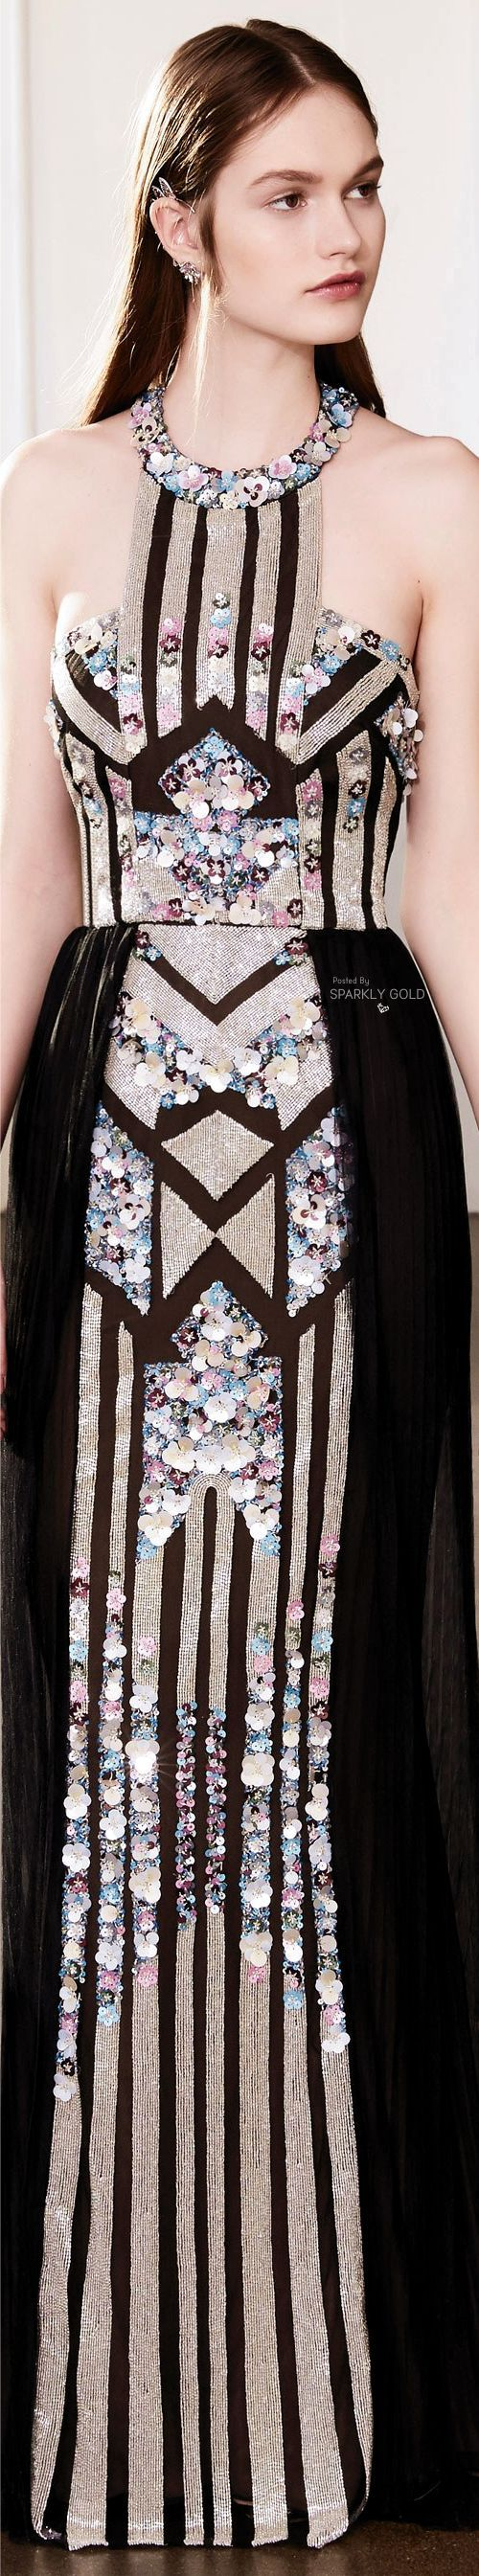 Marchesa Notte Fall 2017 RTW